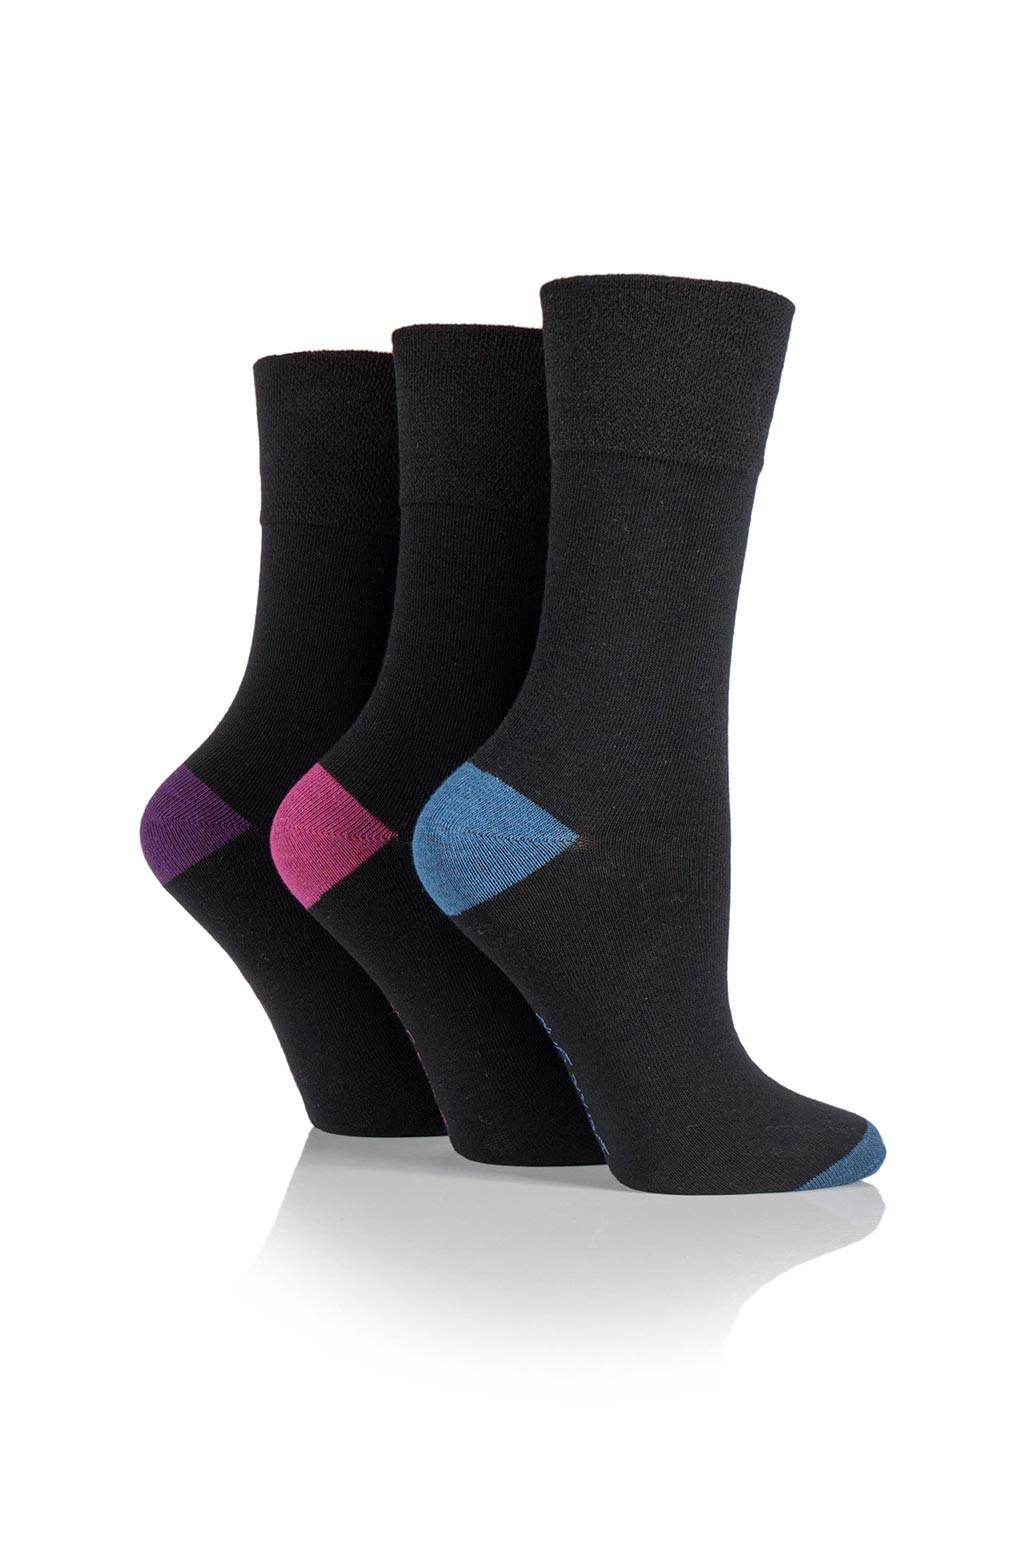 Ladies 5 Pack Contrast Heel and Toe Cotton Rich Socks One Size